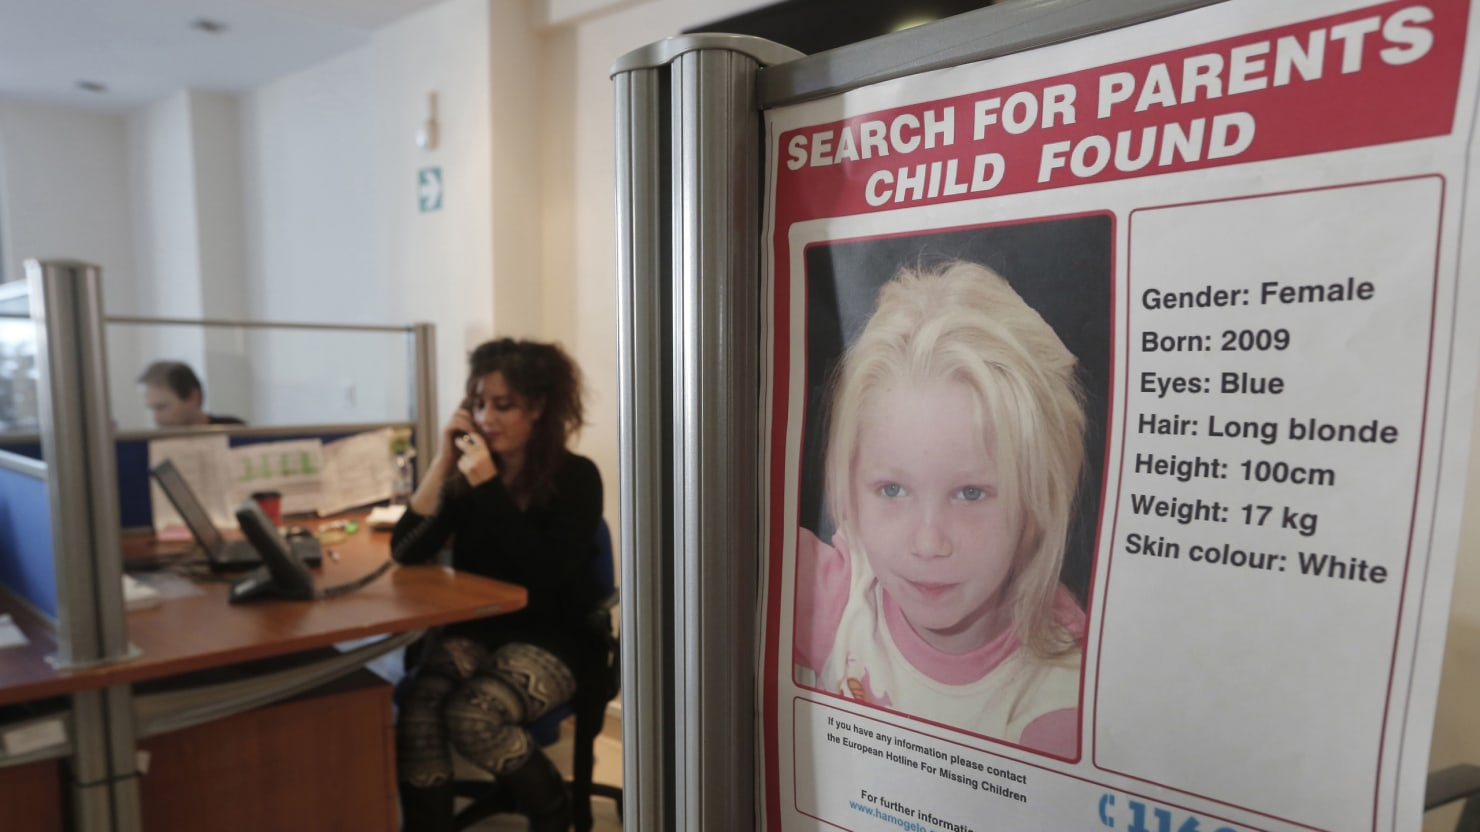 Single Women Adoption And Single Men Adoption In A Reverse Missing Child  Case, Greek Authorities